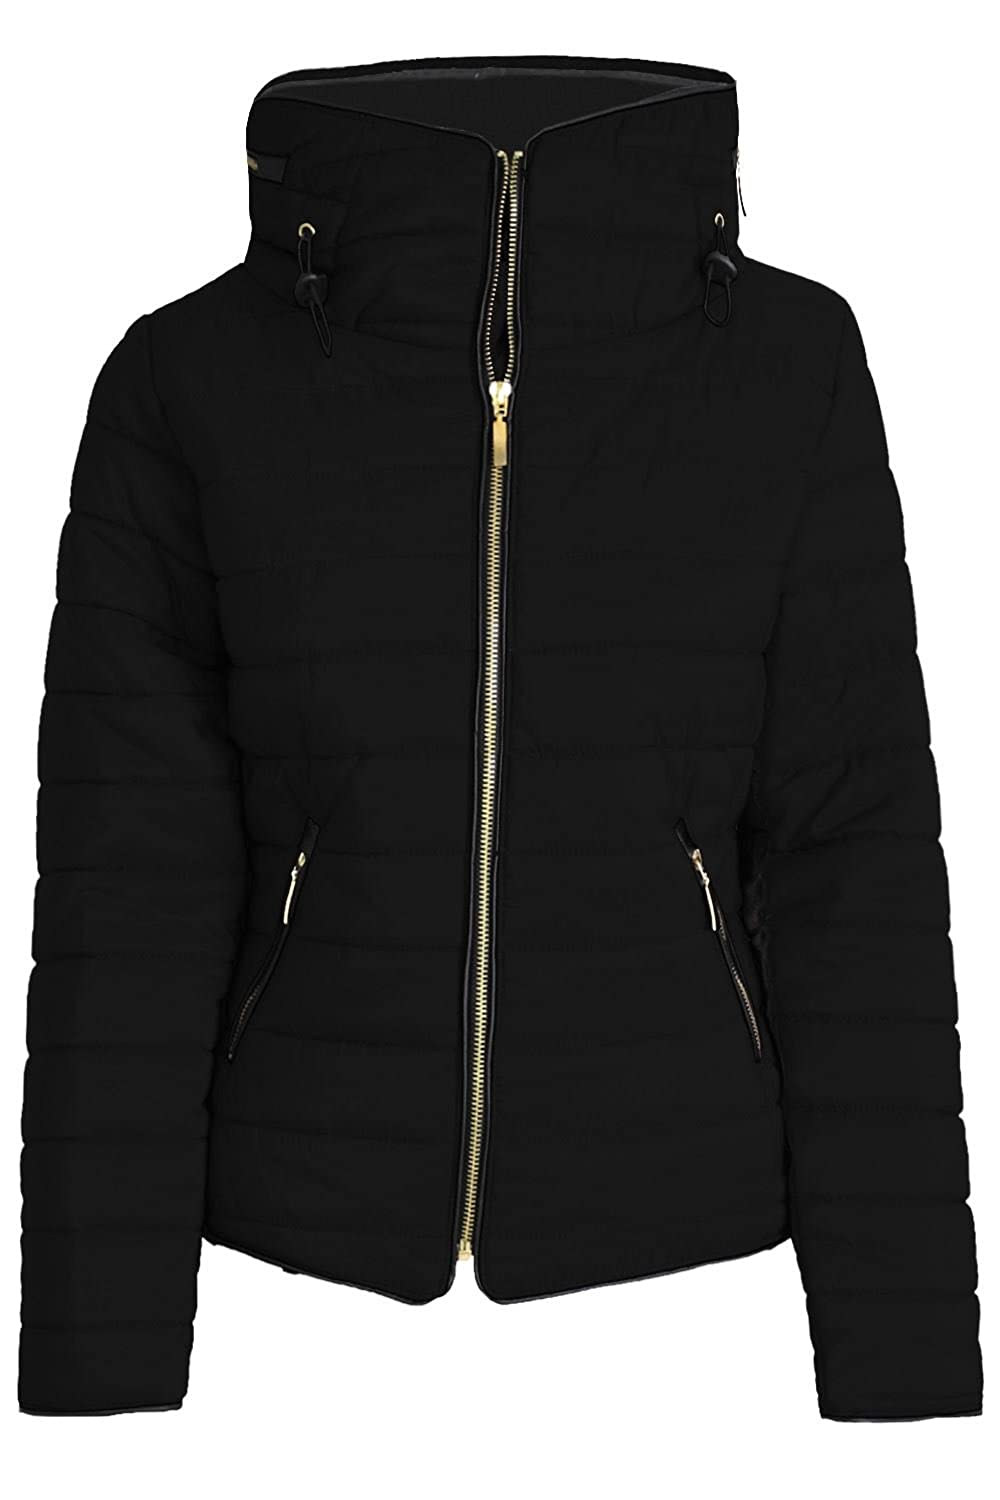 552fa72128e8 Amazon.com  Be Jealous Kids Girls Coat Padded Quilted Puffer Bubble ...